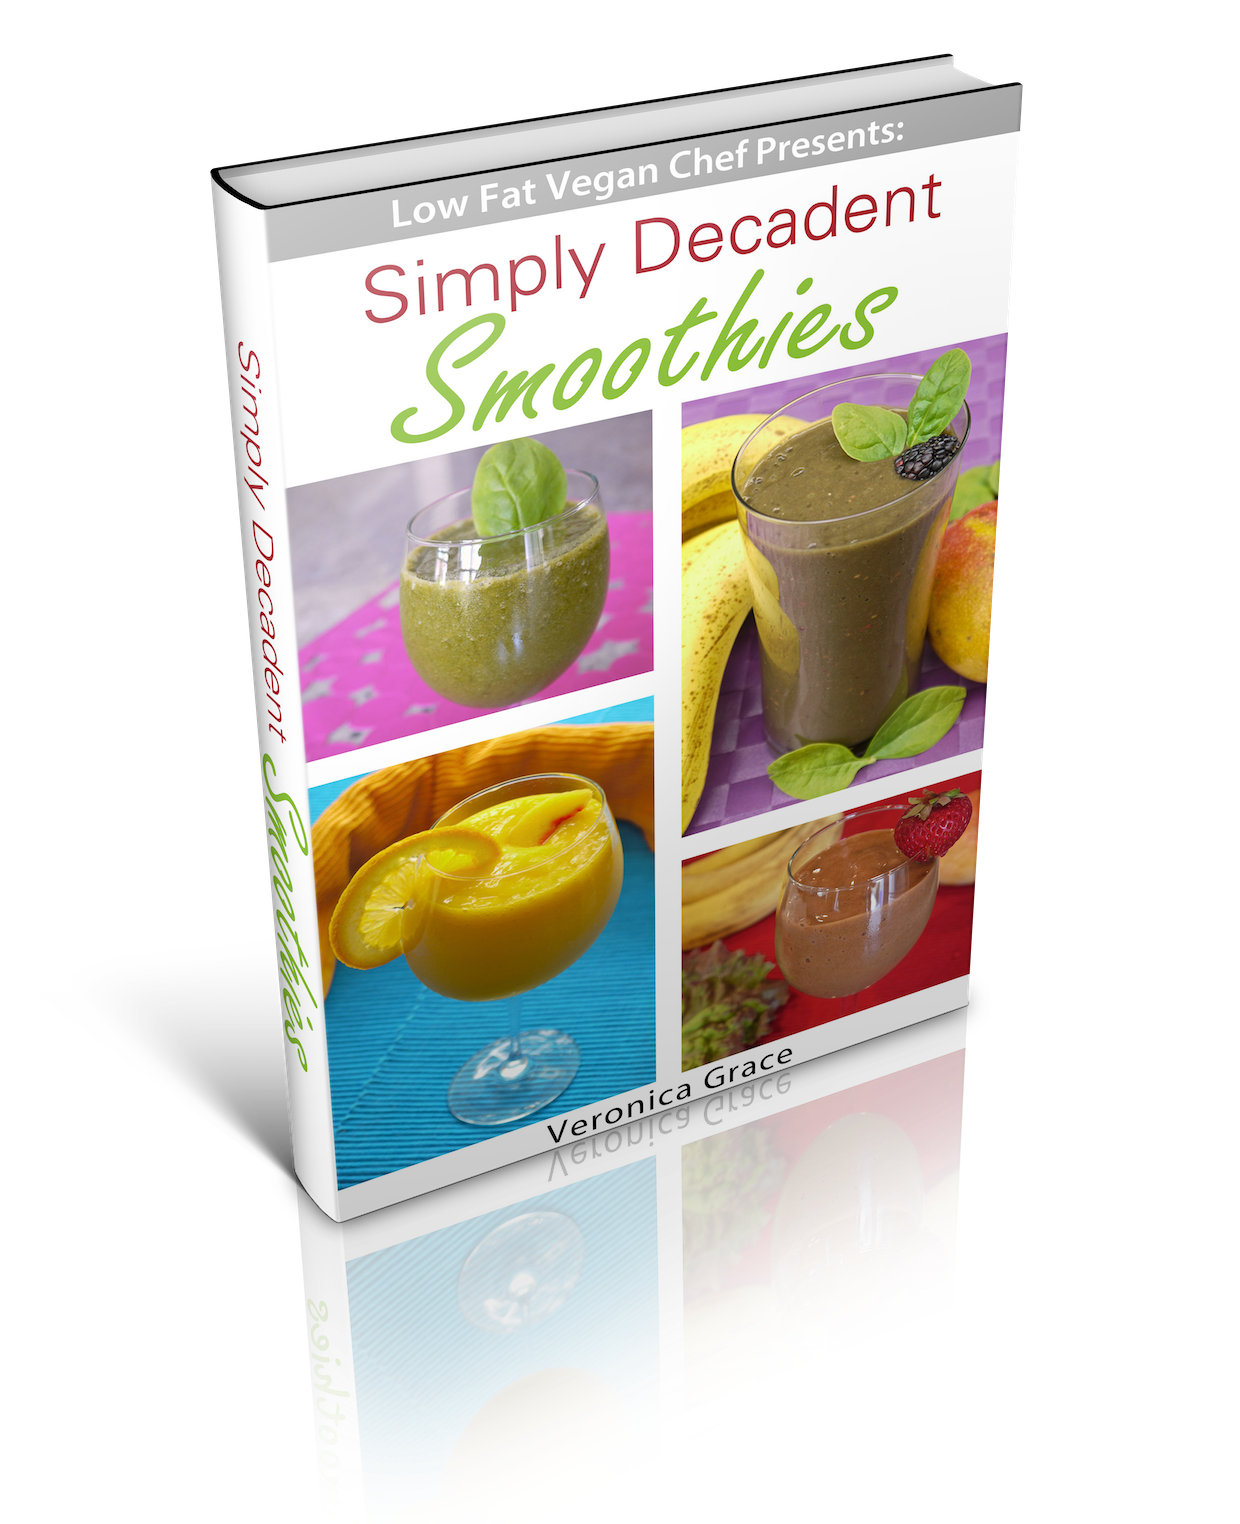 simply decadent smoothies                                         ebook